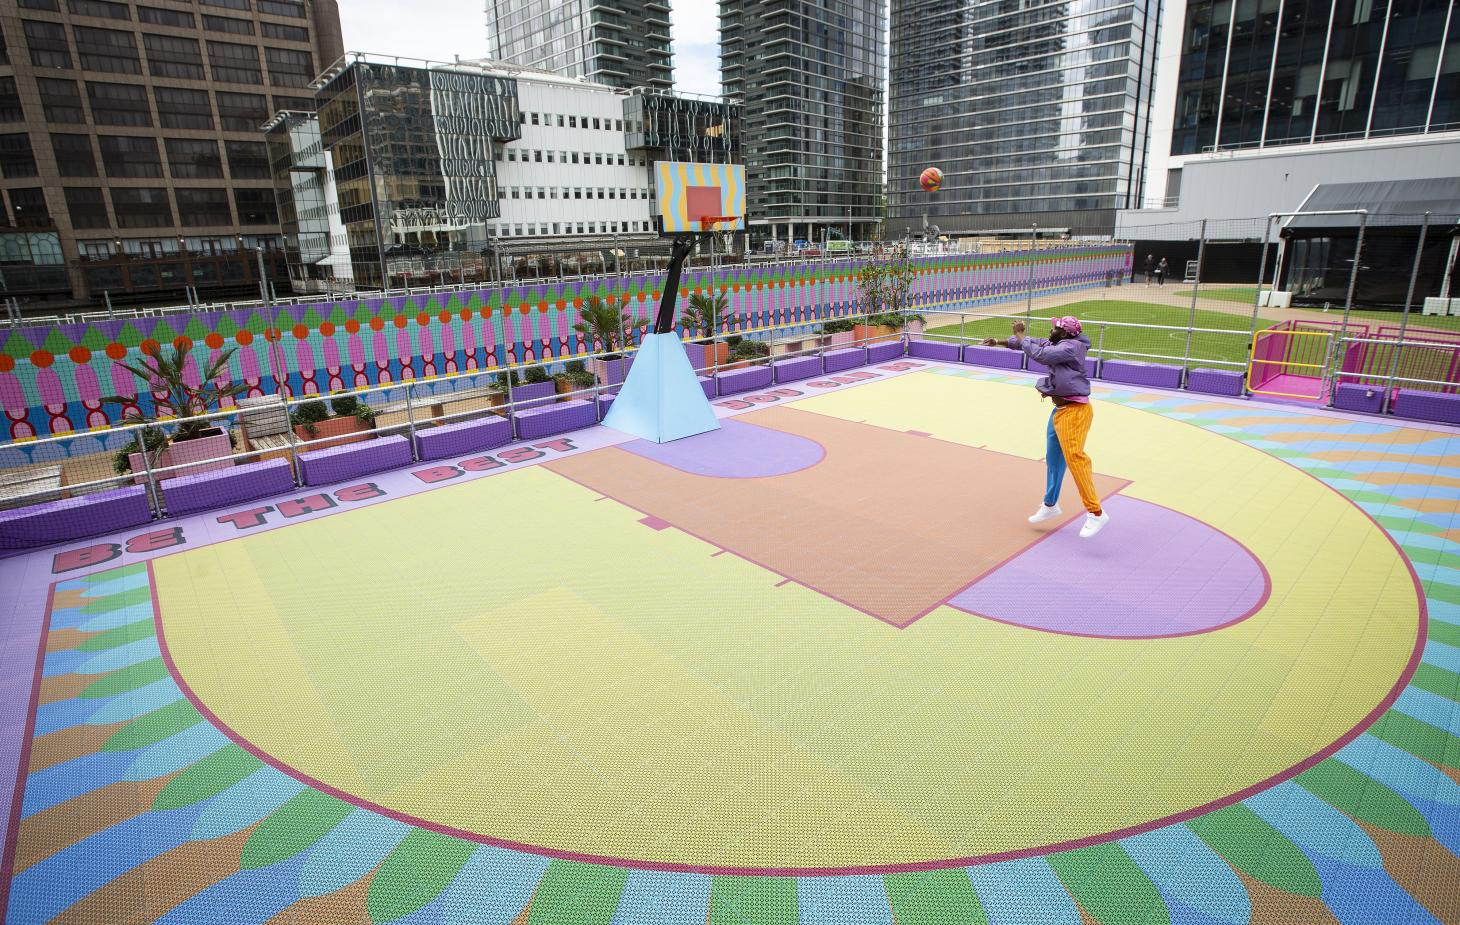 Yinka Ilori playing basket in his colourful court in Canary wharf, London